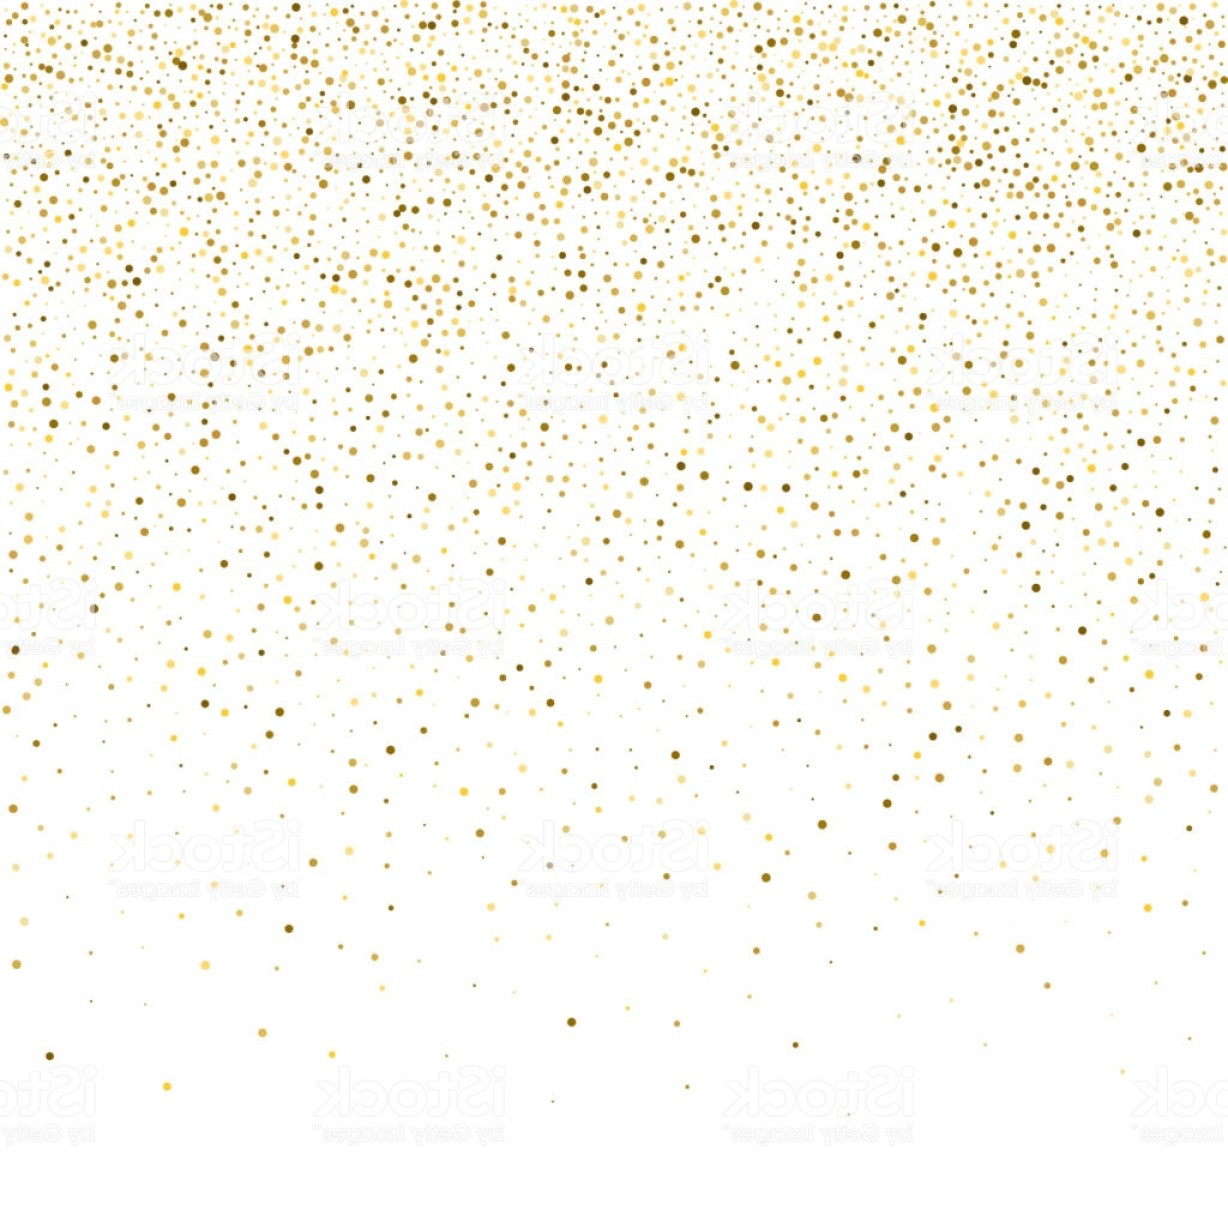 Invite Gold Dots Vector Glittter: Vector Glitter Background Cute Small Falling Golden Dots Sparkle Background Glitter Gm